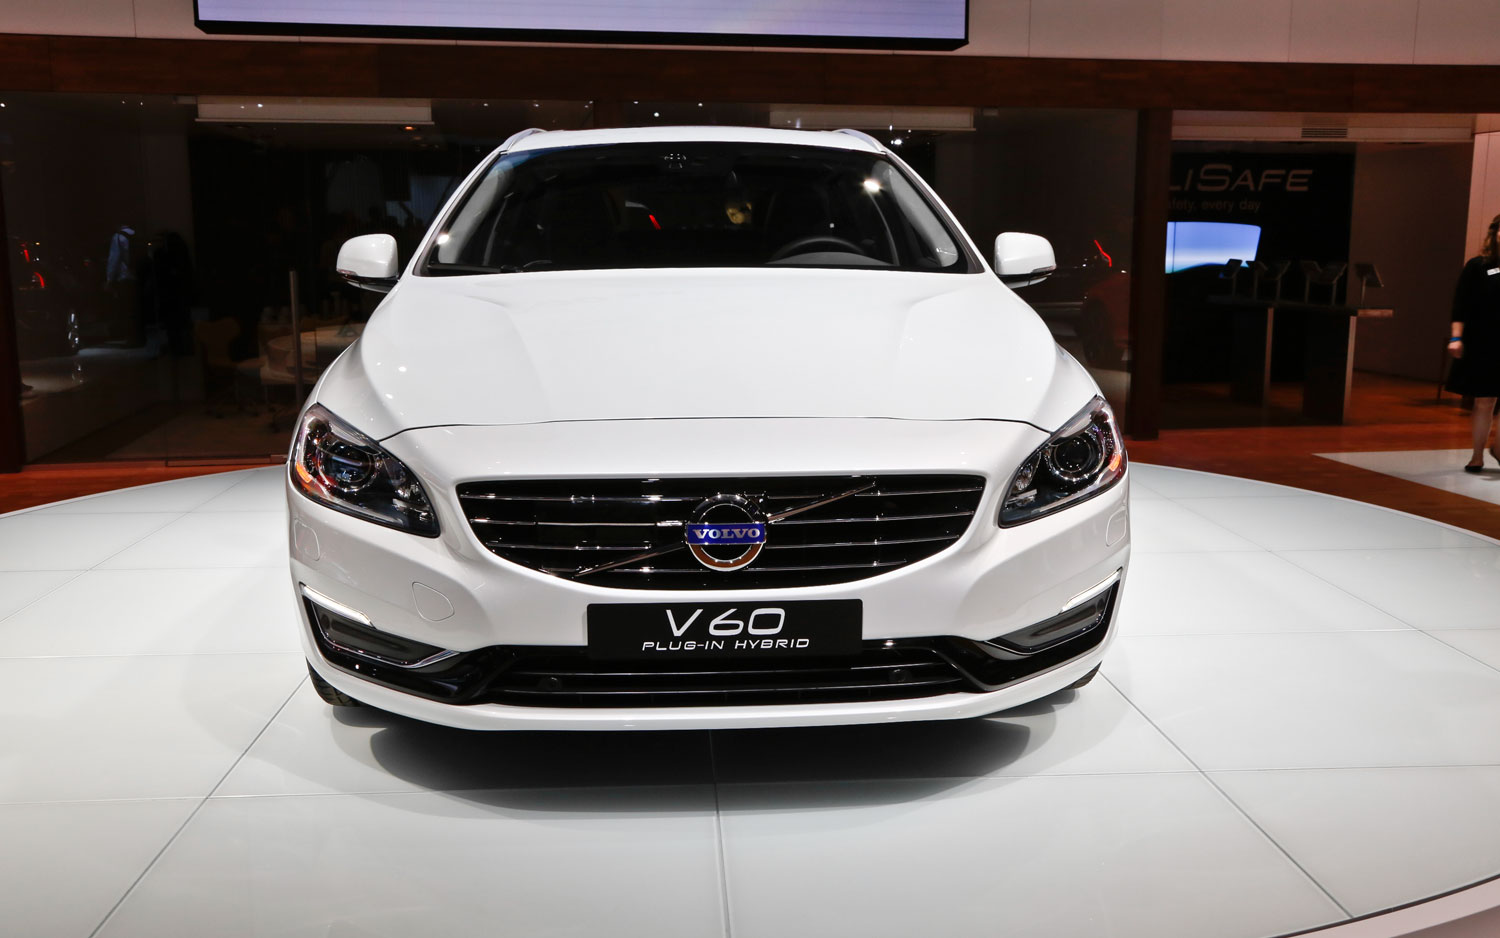 2014 Volvo V60 Front View1